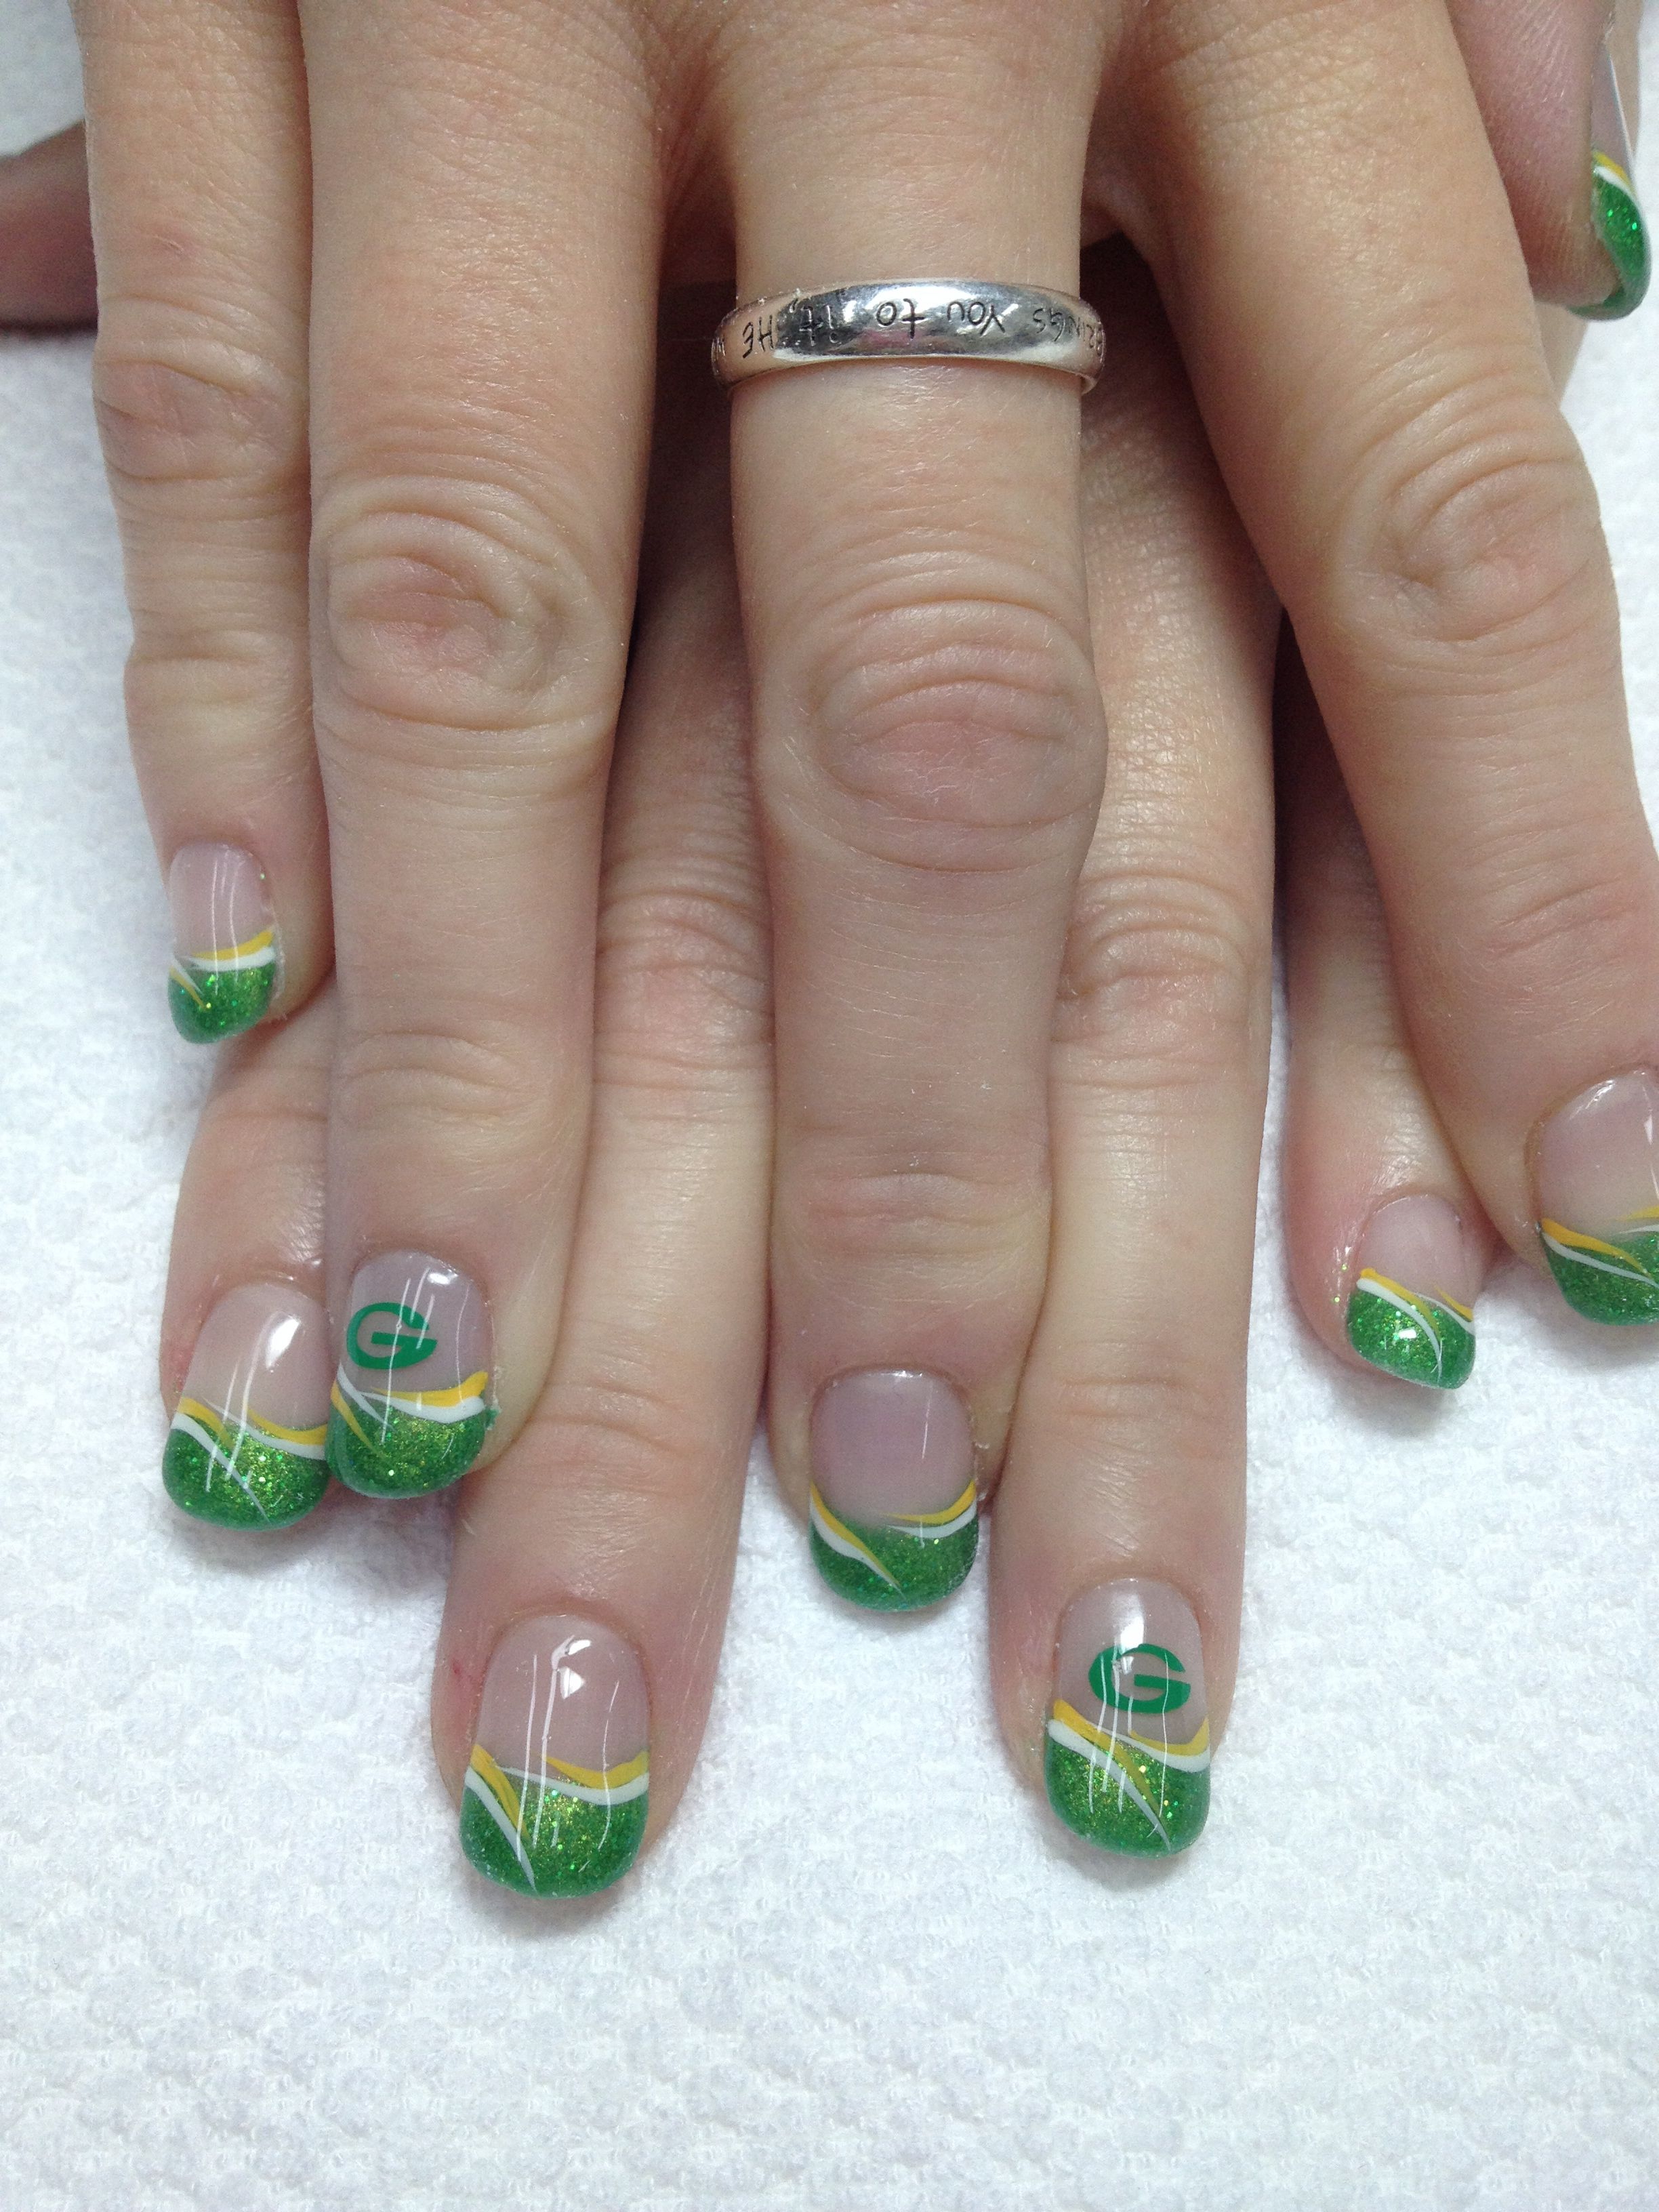 Go Pack Go Sparkly Green Packer Nails All Odorless And Non Toxic Gel With Images Packer Nails Green Bay Packers Nail Art Green Bay Packers Nails